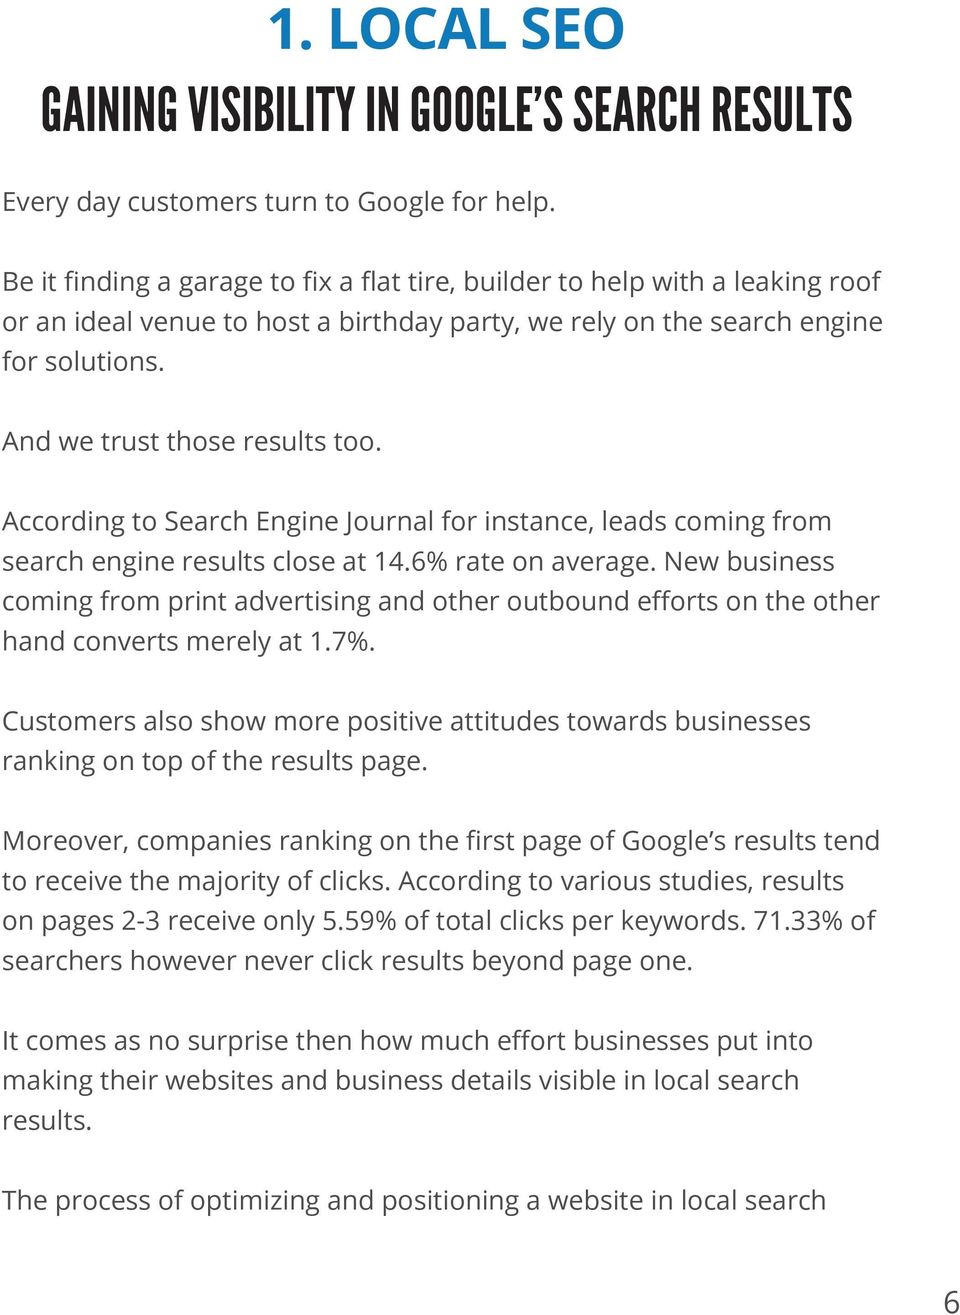 According to Search Engine Journal for instance, leads coming from search engine results close at 14.6% rate on average.